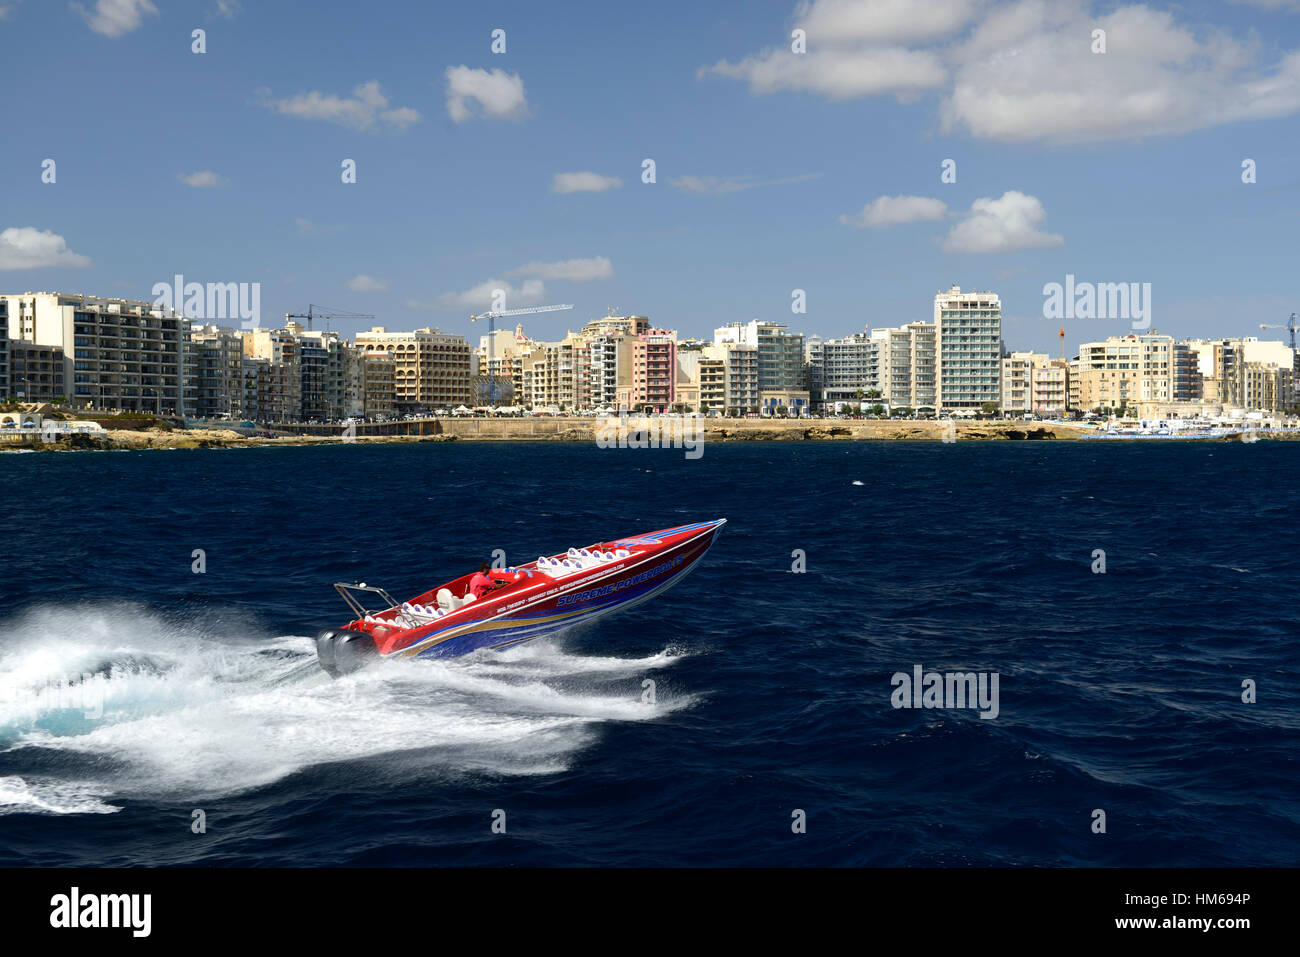 powerboat speedboat Mediterranean sea ocean sport tourism sightseeing action active island tour tours Malta Gozo - Stock Image